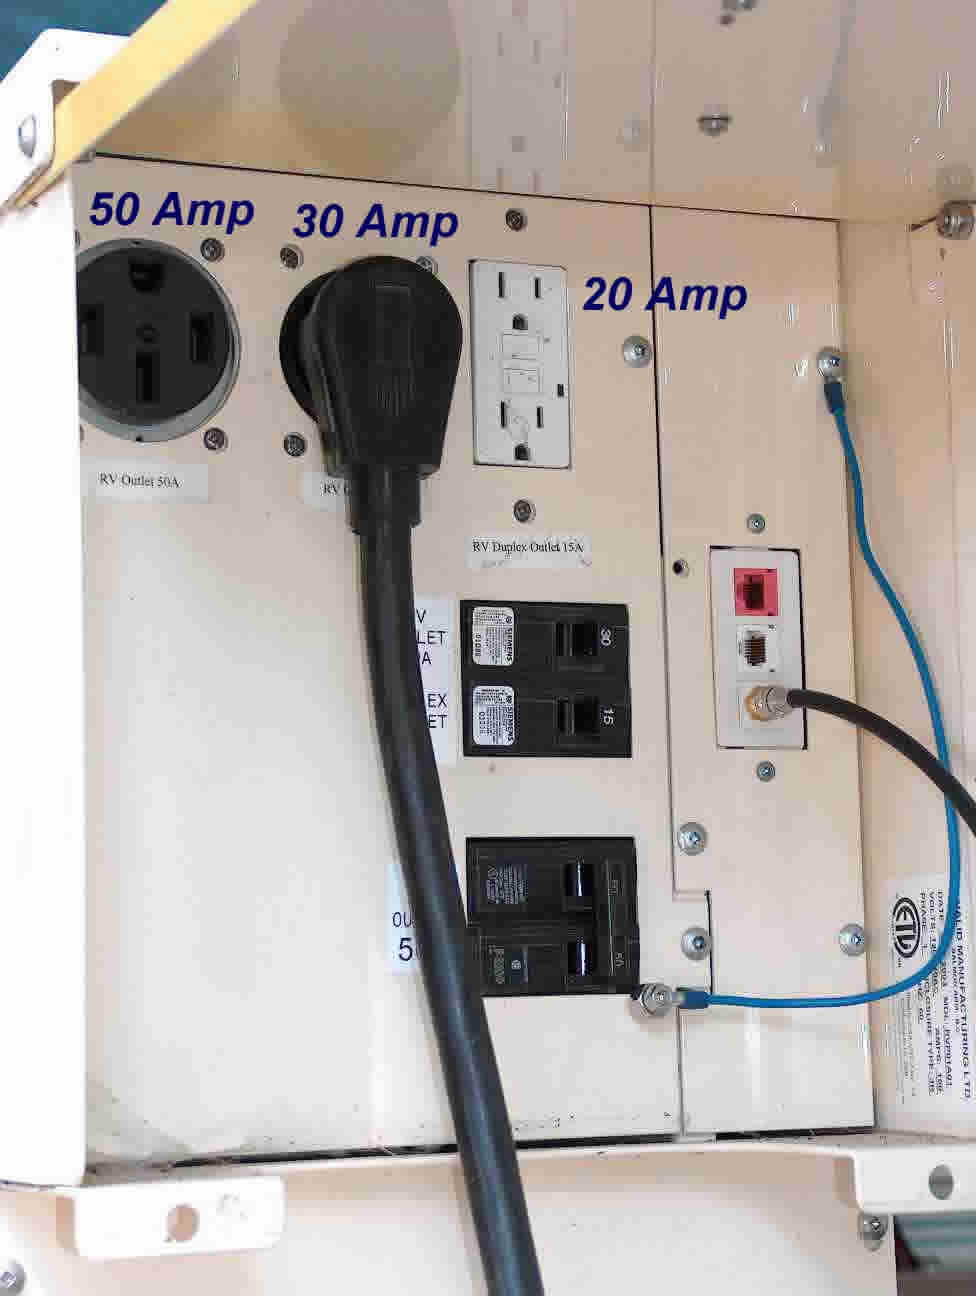 Amusing 30 Amp Rv Wiring Diagram 46 About Remodel Two Way Switch Wiring  Diagram with 30